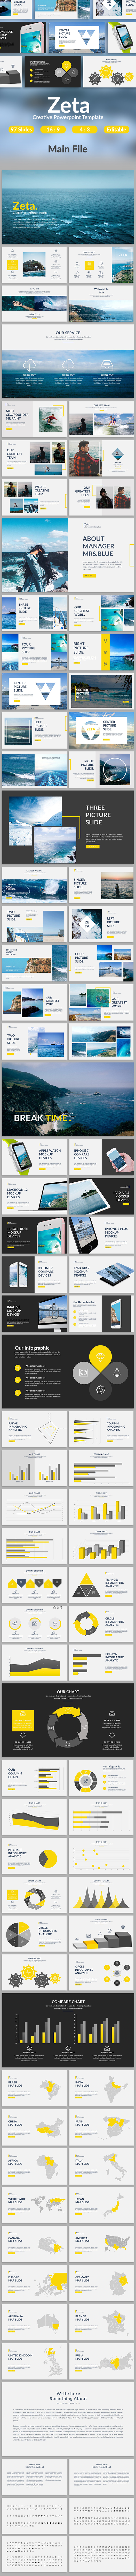 Zeta - Creative Keynote Template - Creative Keynote Templates